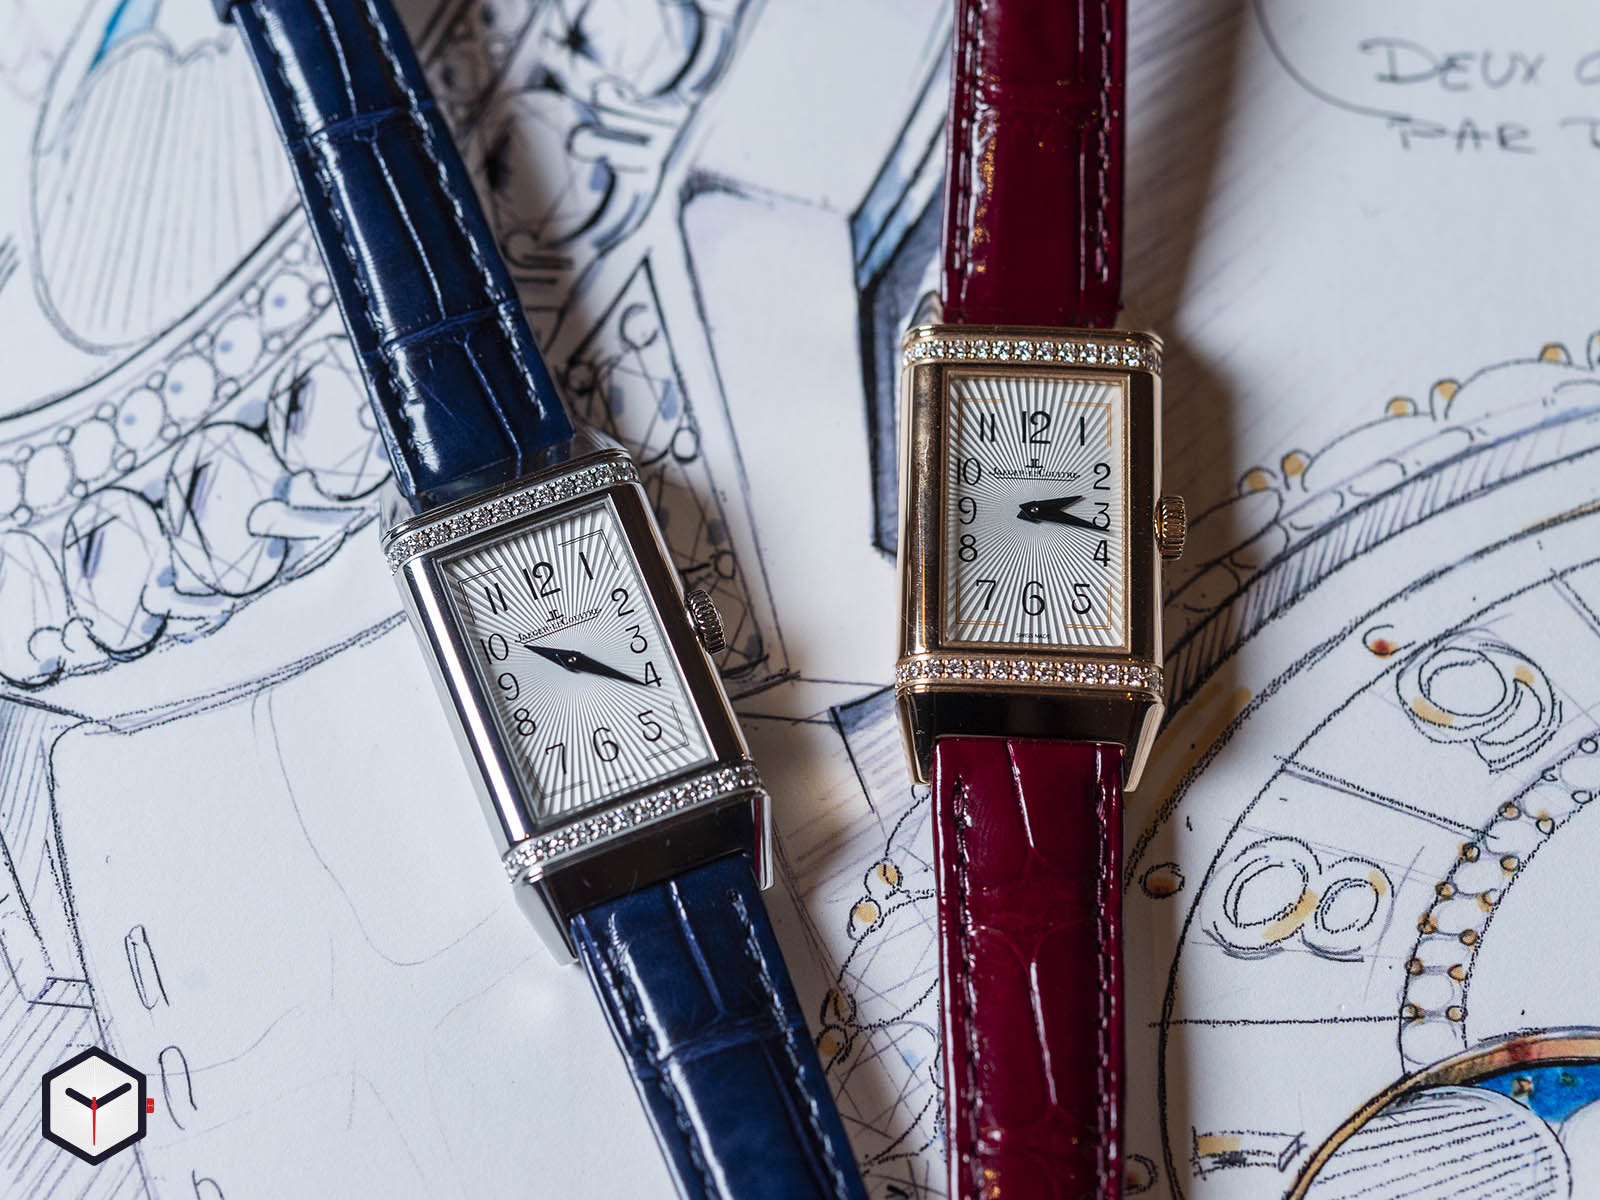 3342520-jaeger-lecoultre-reverso-one-duetto-sihh-2019-7.jpg